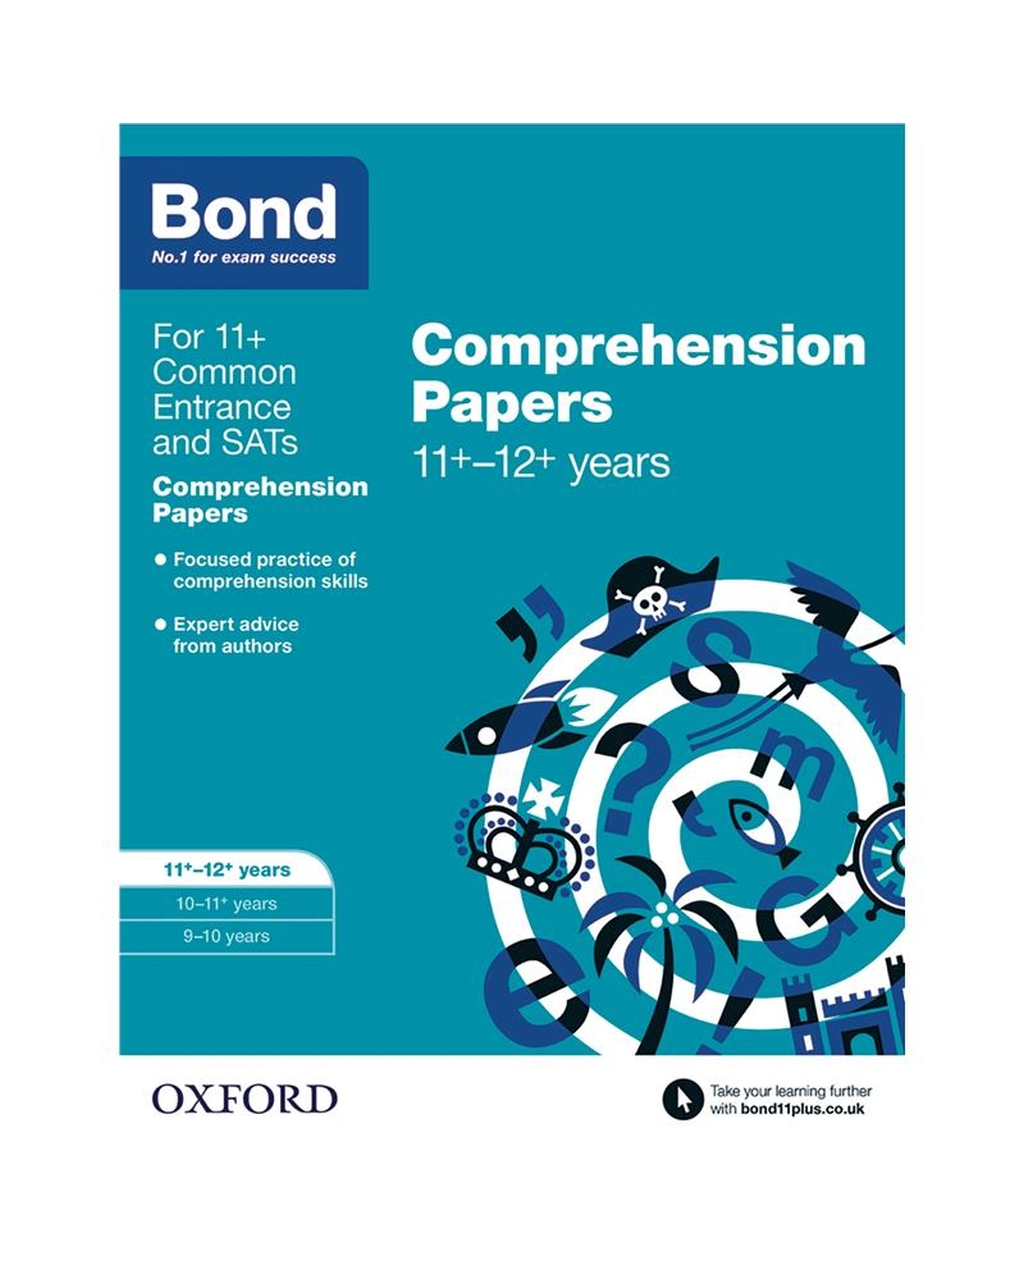 Bond Comprehension Papers 11-12+years